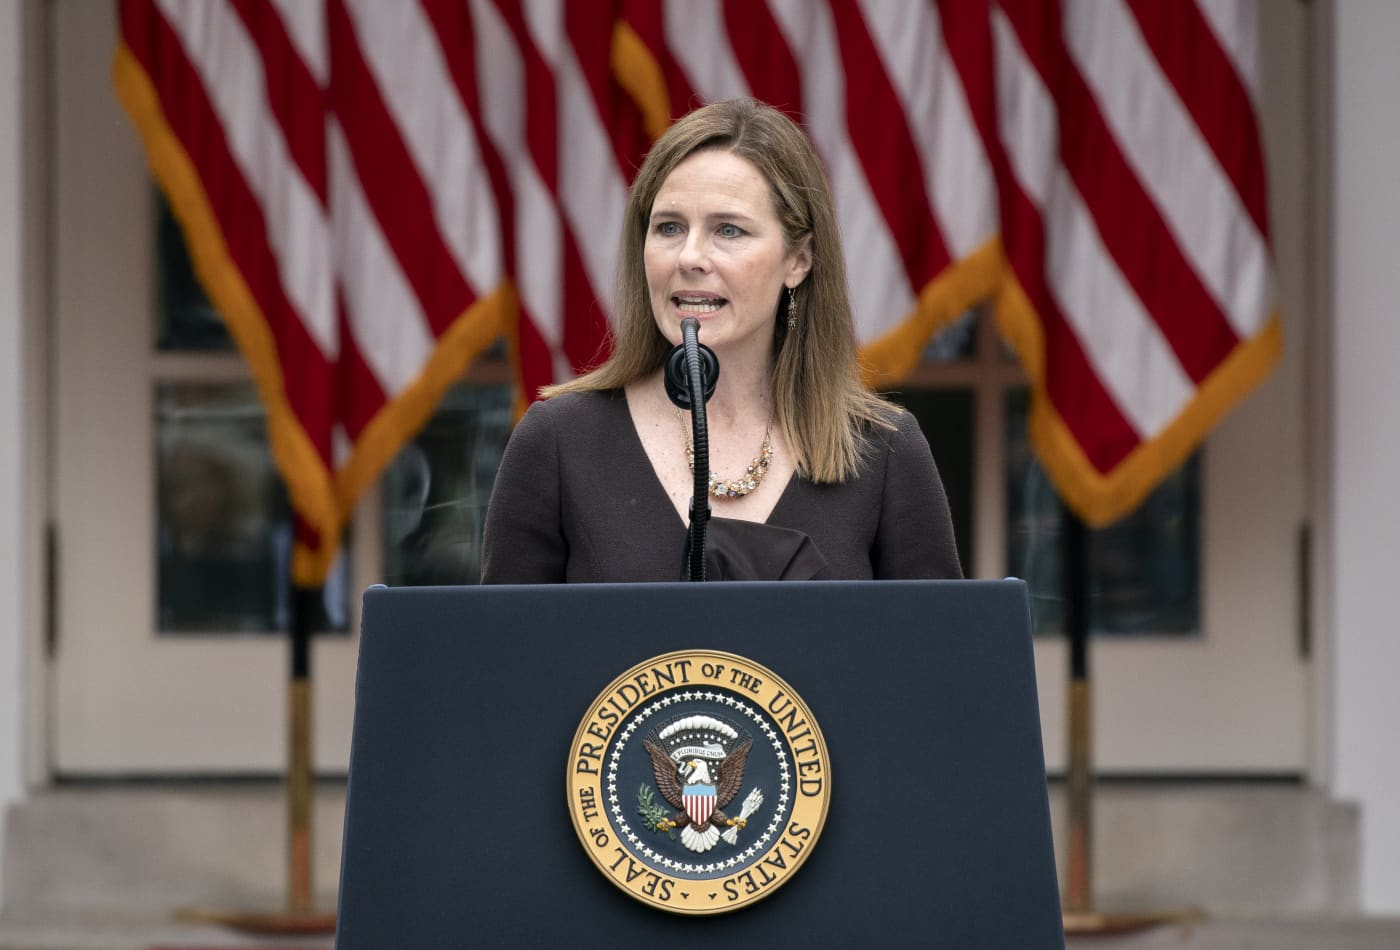 Trump nominates Amy Coney Barrett to Supreme Court, setting up election year confirmation battle